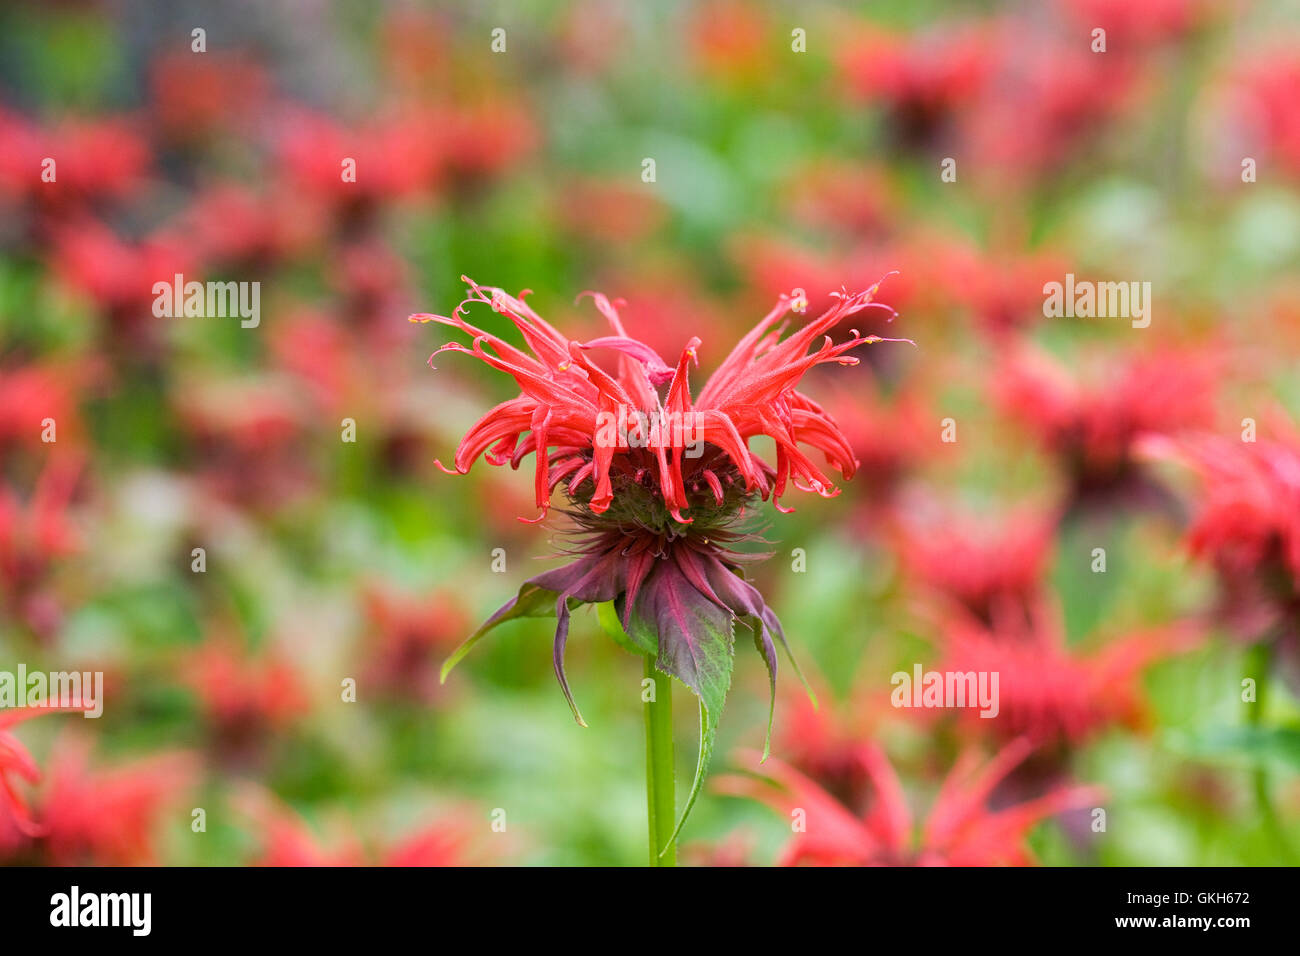 Monarda didyma 'Squaw'. Bergamot flowers. Stock Photo